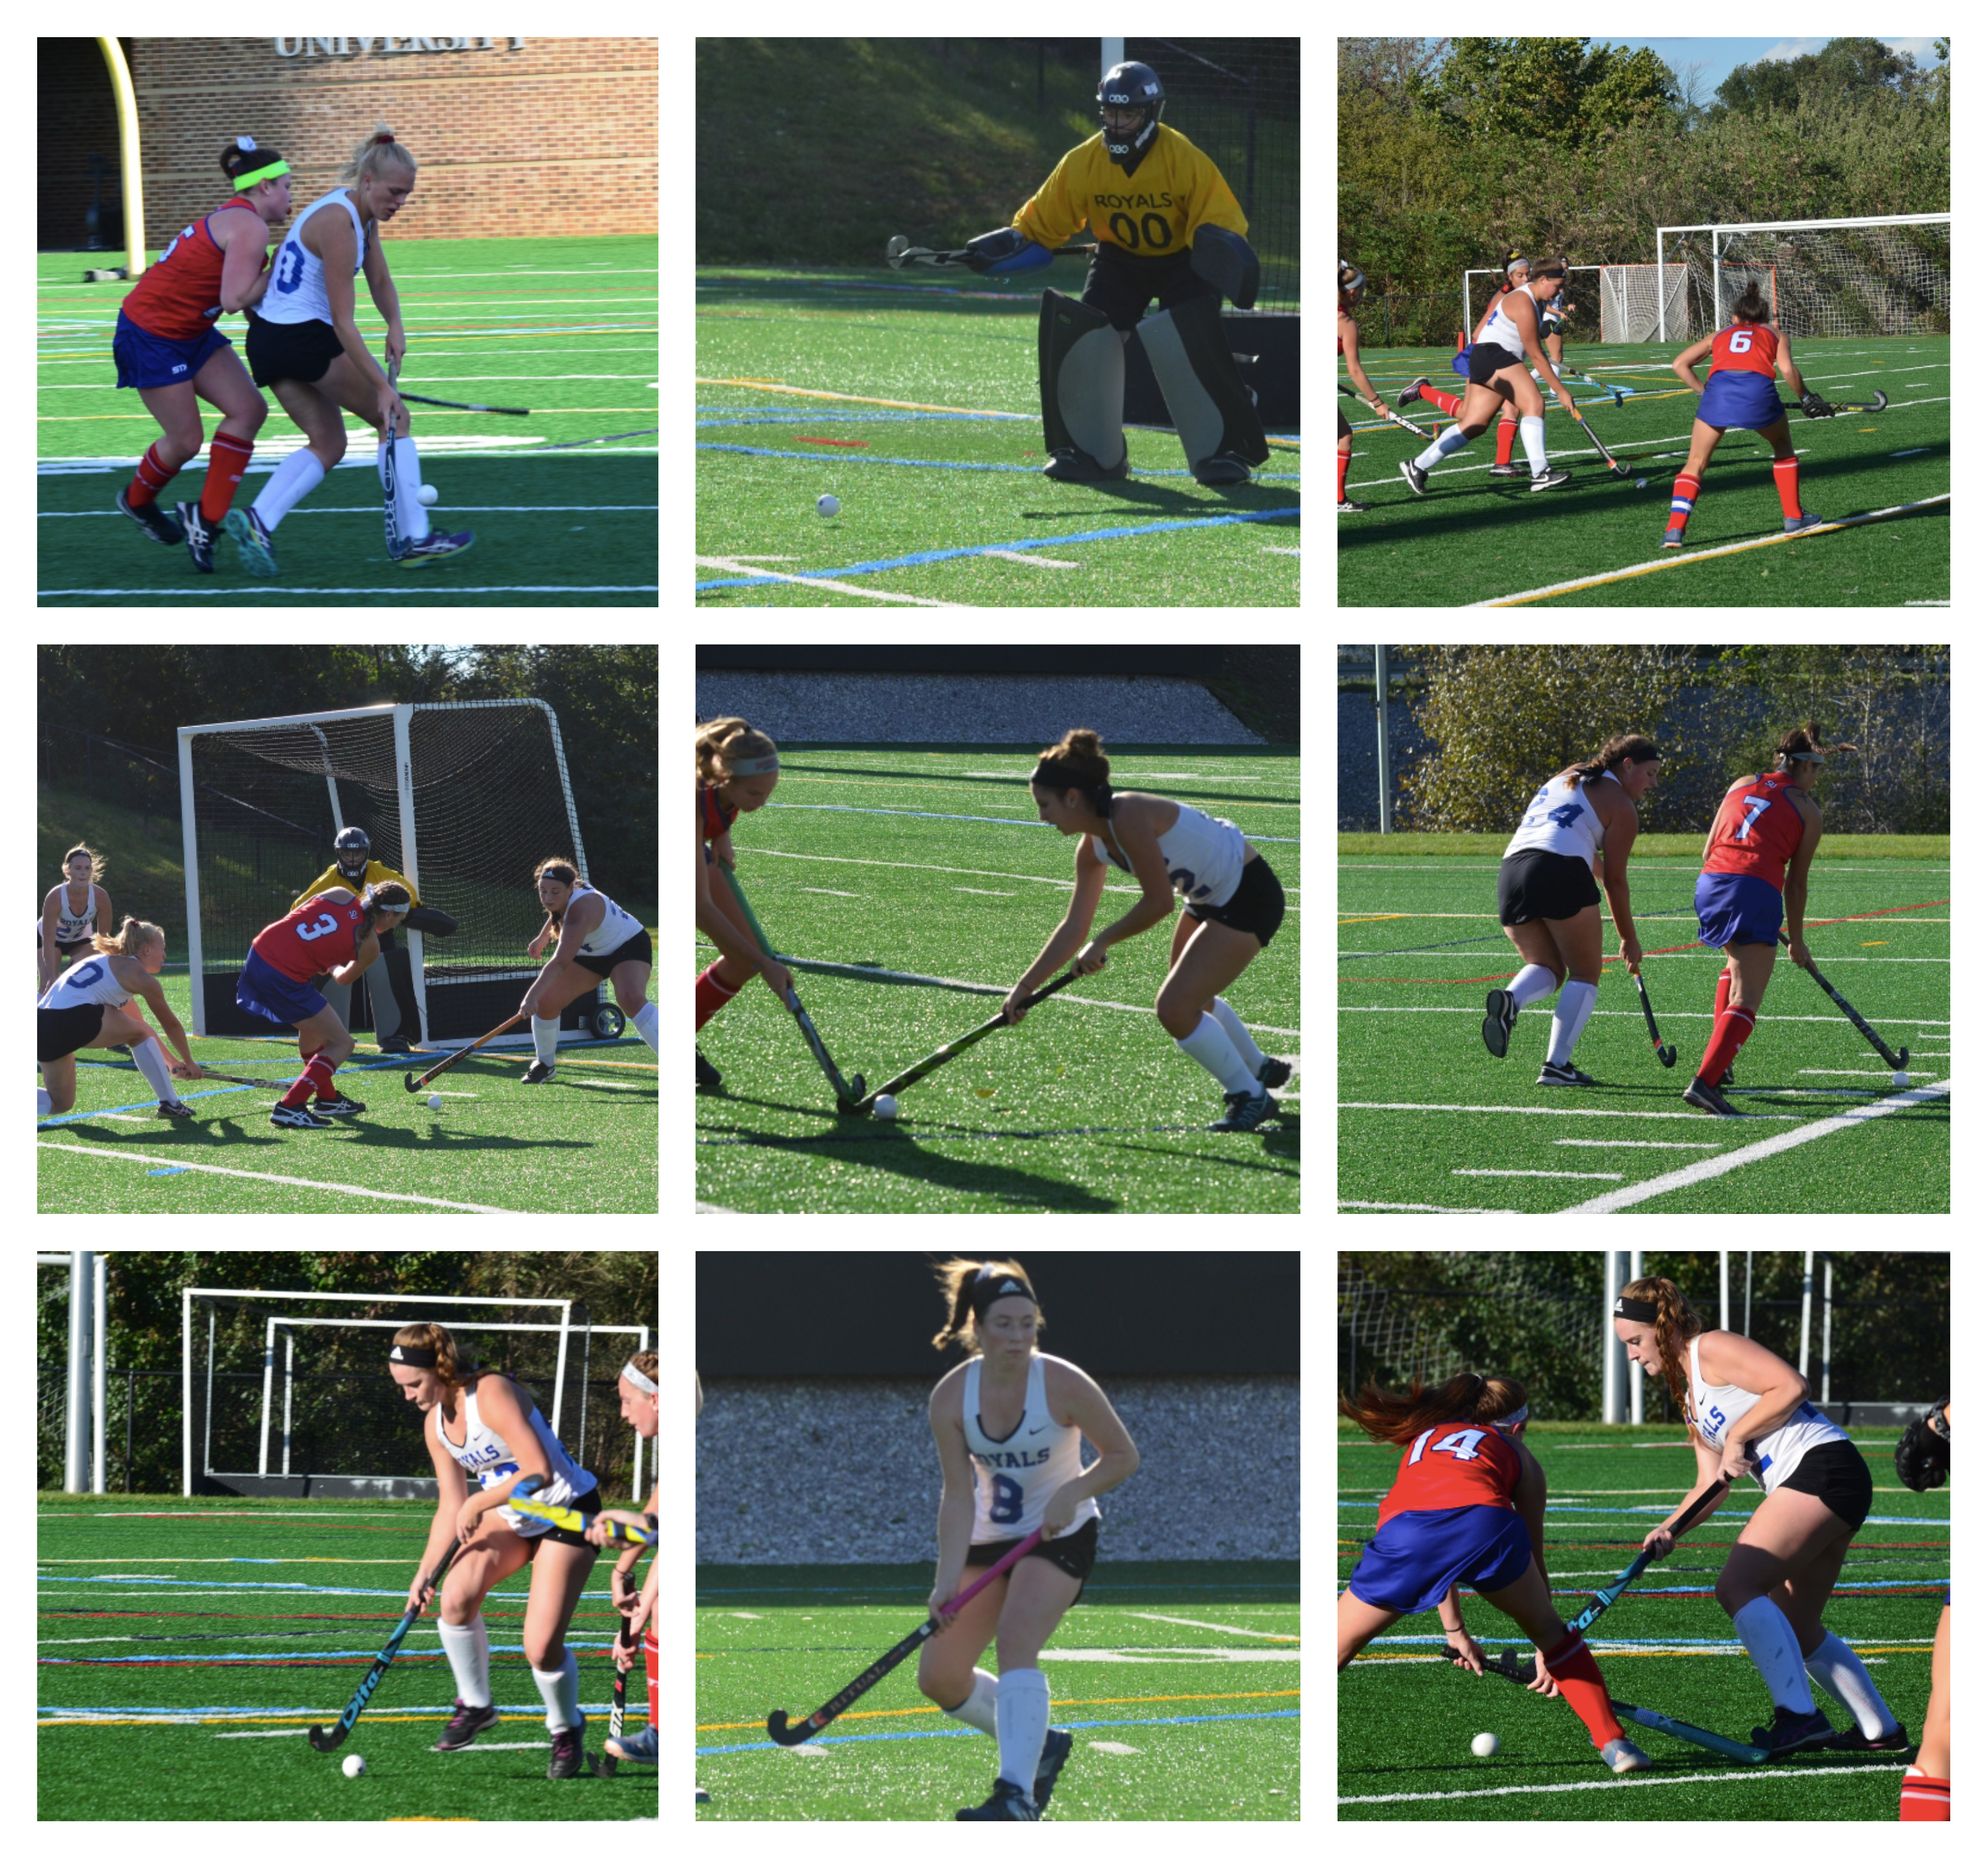 ac92fb267a This win meant a lot to the players and coaches on our team because, it was  not only a big win for us but it was also EMU Field Hockey's first ODAC win  ...